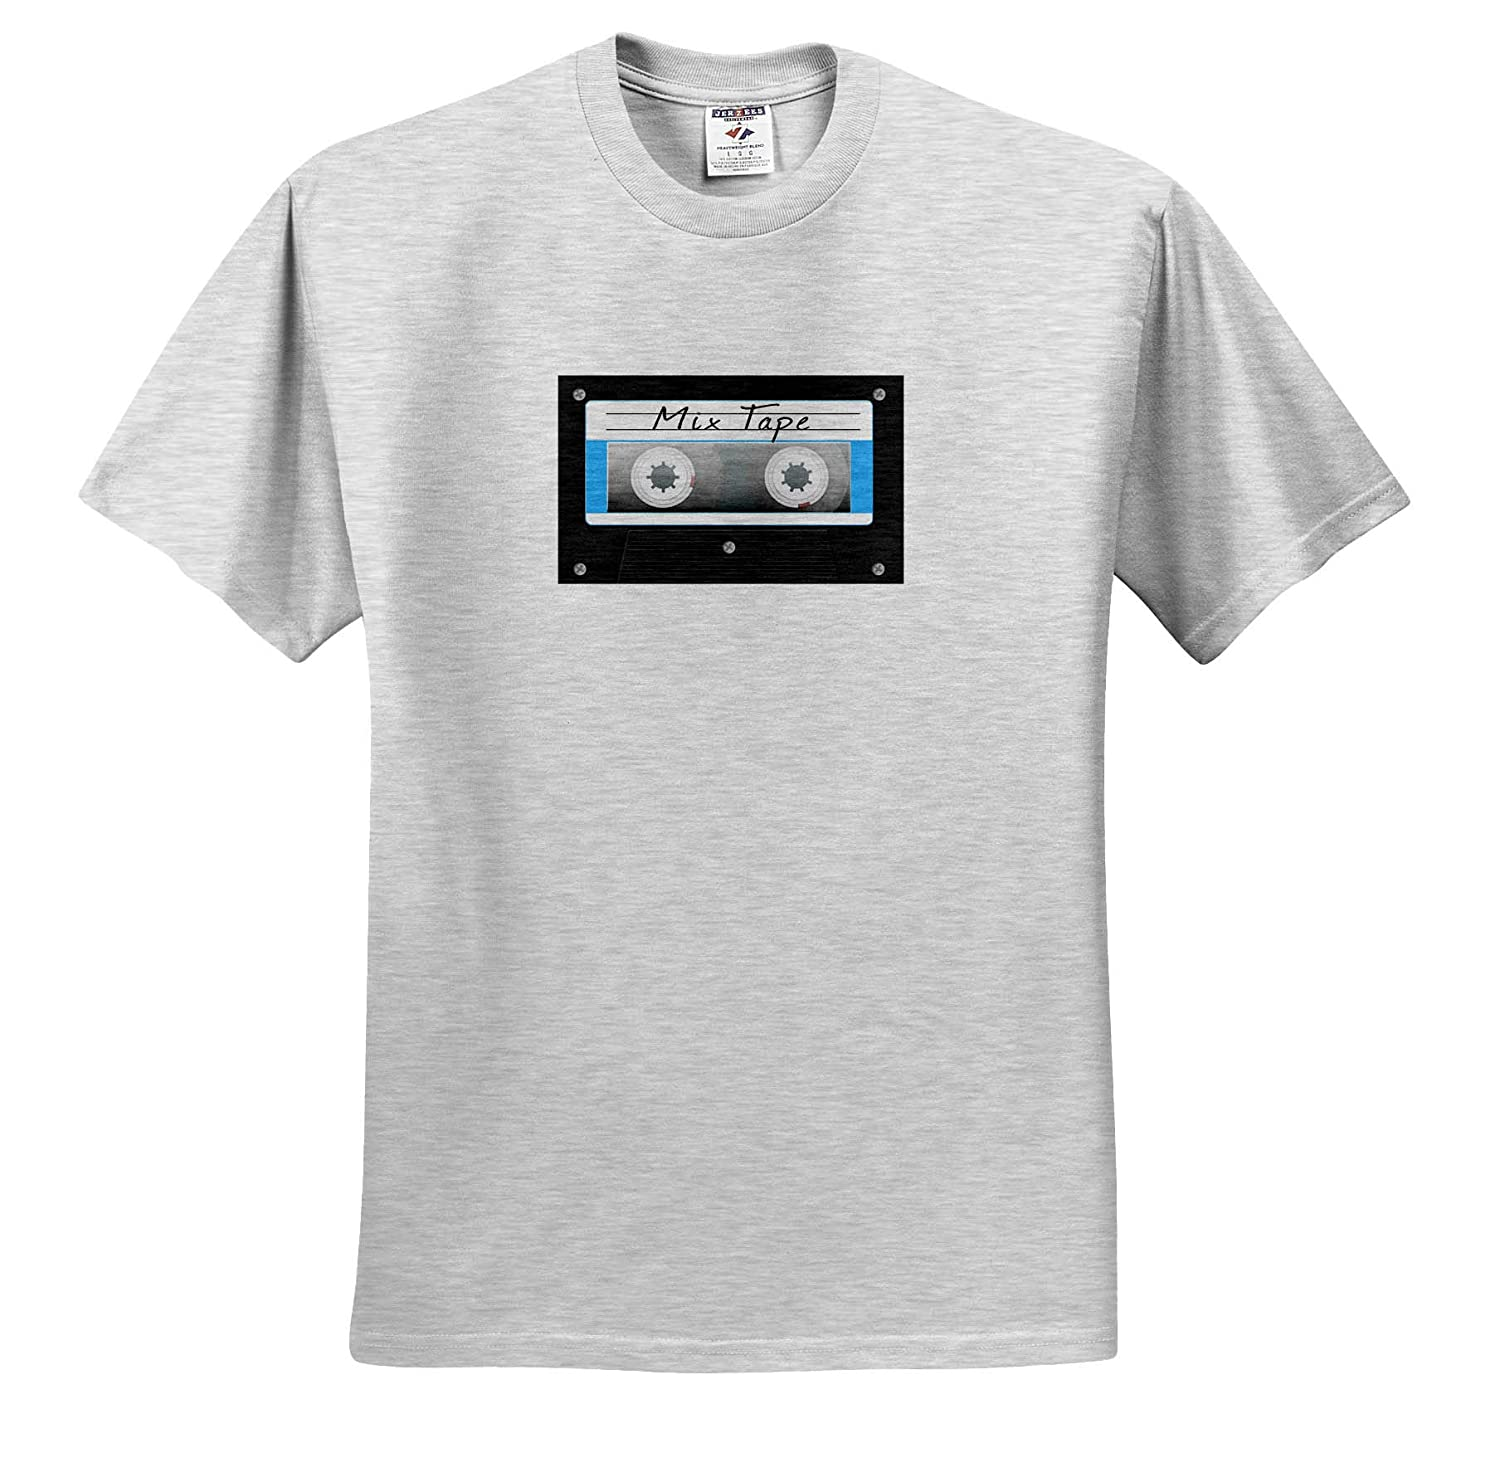 Retro Cassette Tape Mix Tape for Anyone who Loves 80s Music 3dRose Macdonald Creative Studios - T-Shirts Music